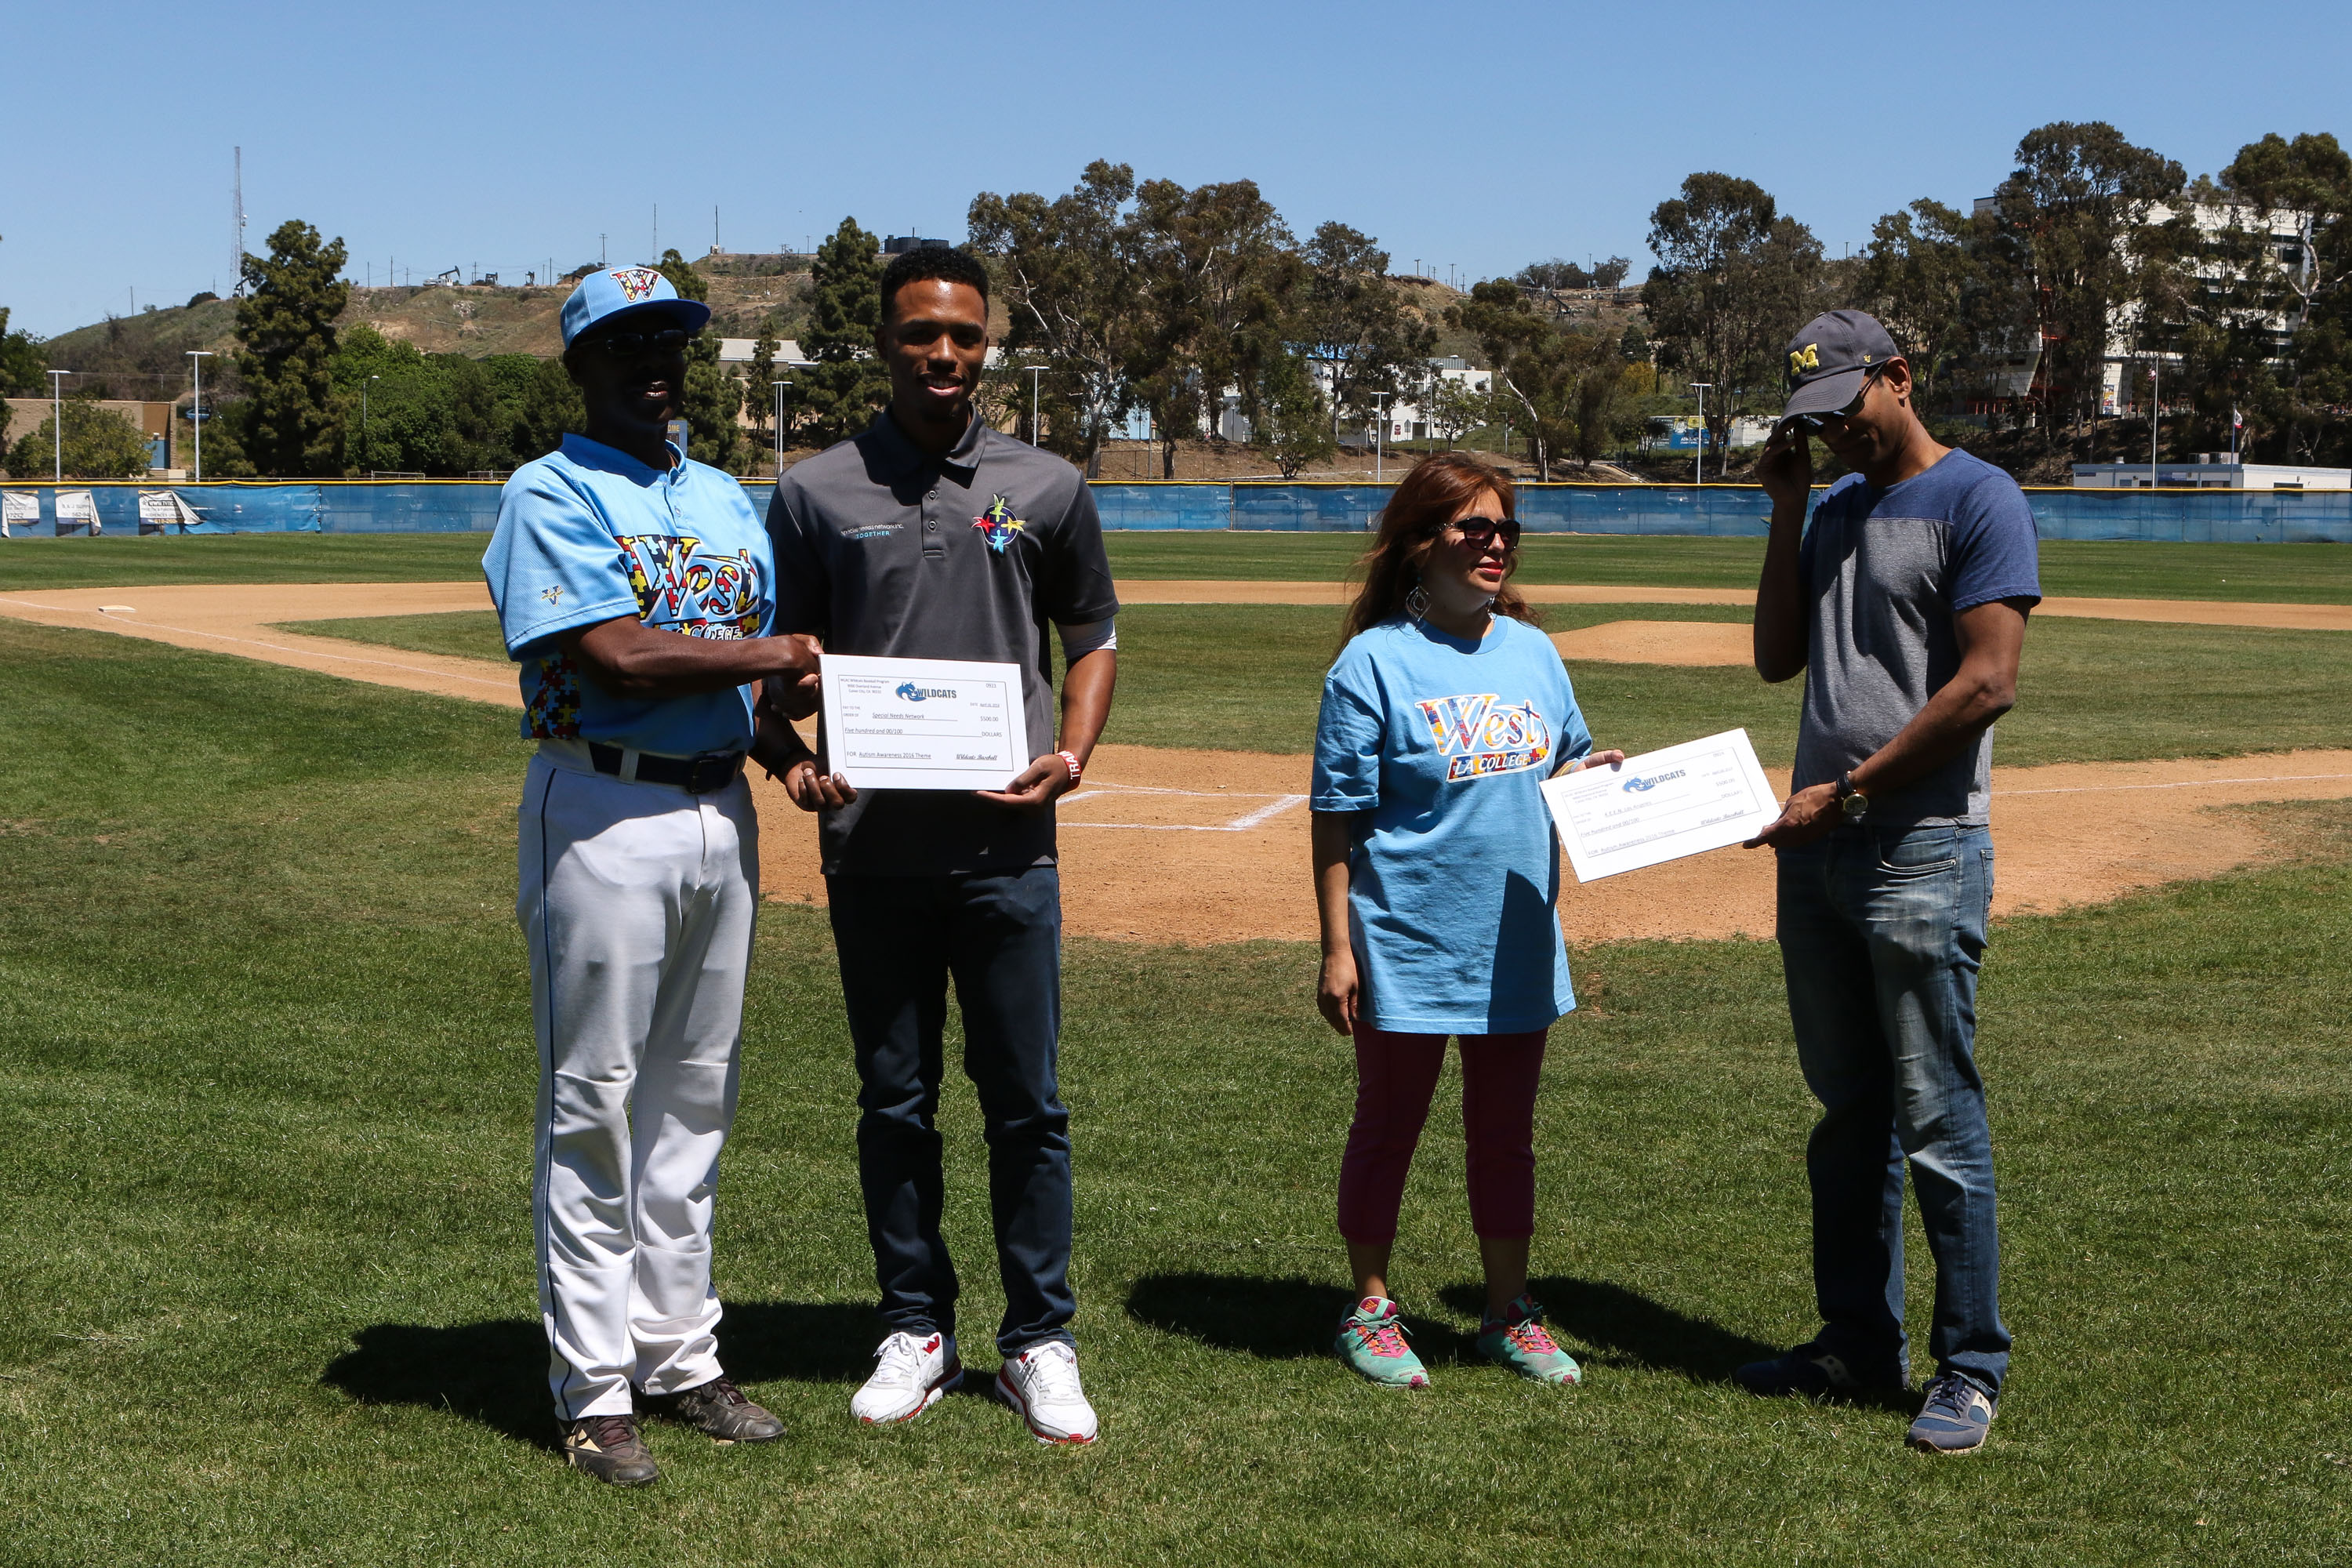 JUCO Baseball 2016: Antelope Valley College vs West L.A. College special game supporting Autism Awareness at West LA College in Los Angeles, CA. (Photo by Jevone Moore/Full Image 360)